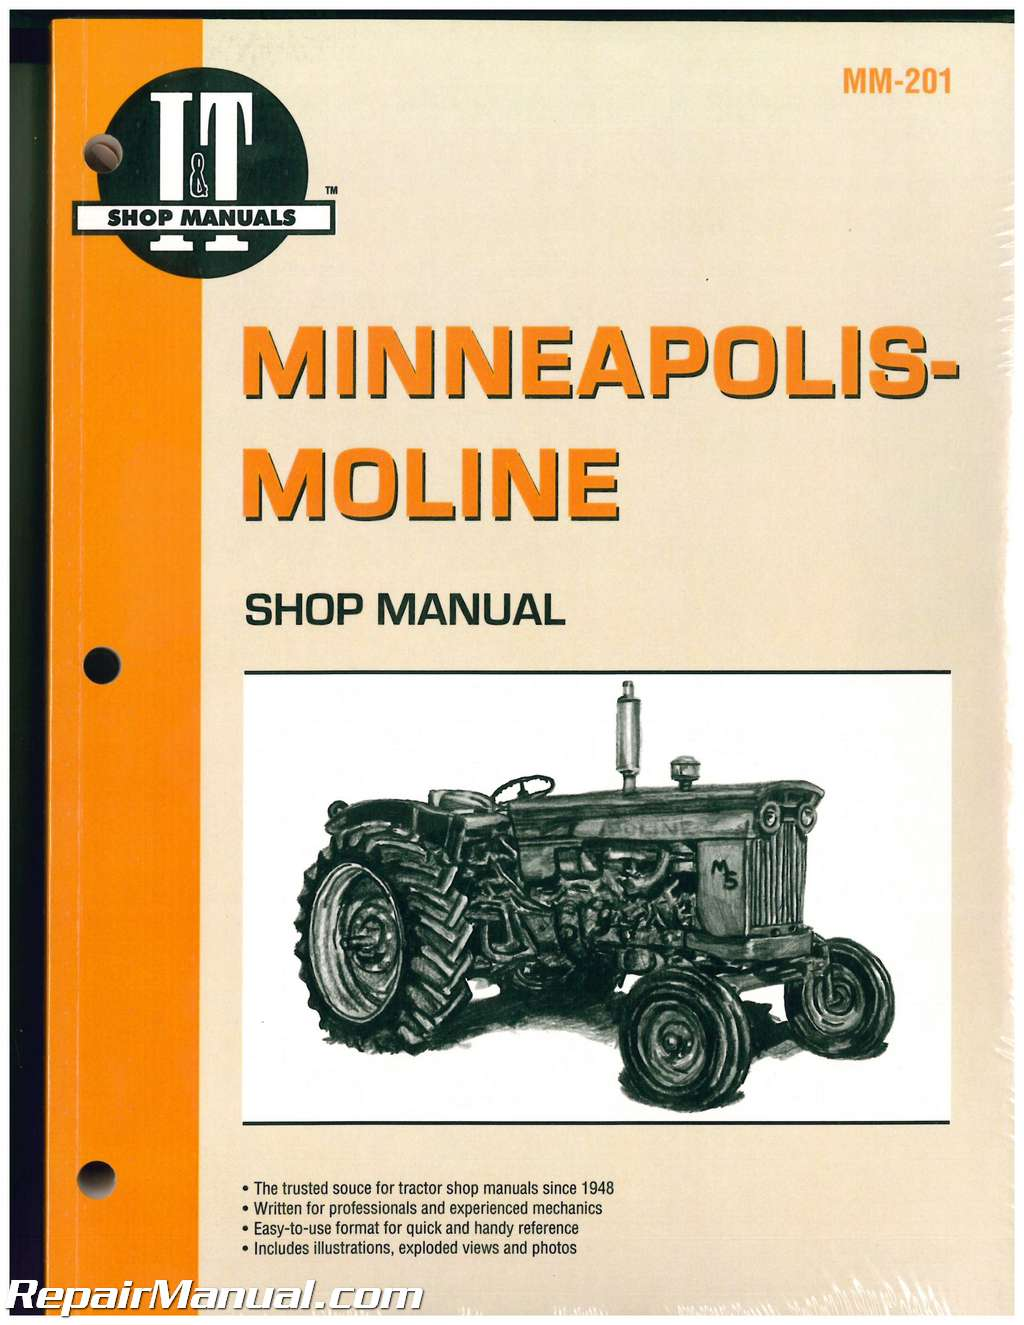 minneapolis moline shop service farm tractor manual mm 201 ebay